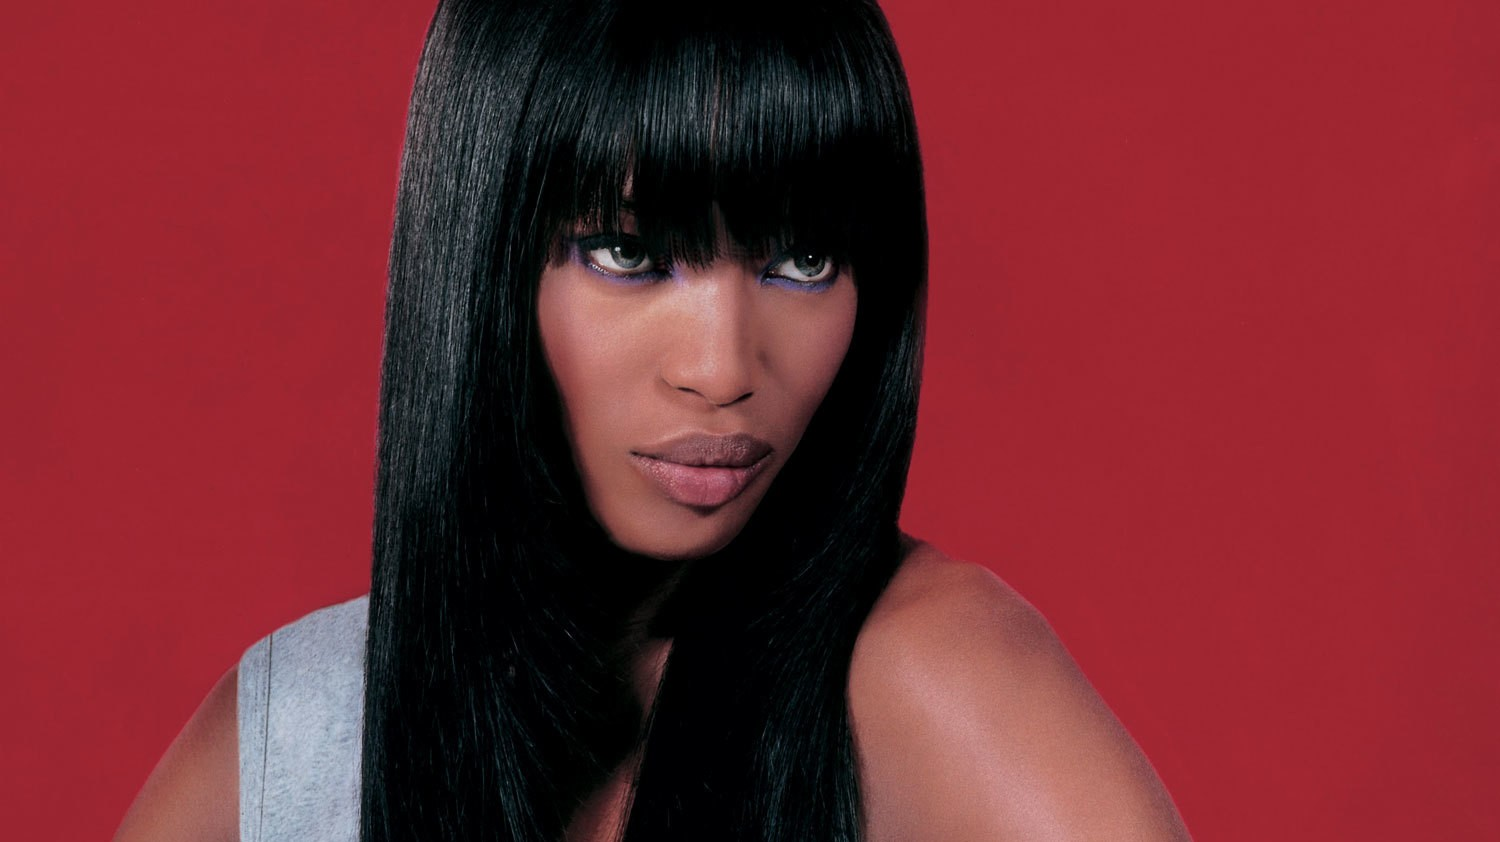 ​naomi campbell to launch london fashion week with show in aid of ebola